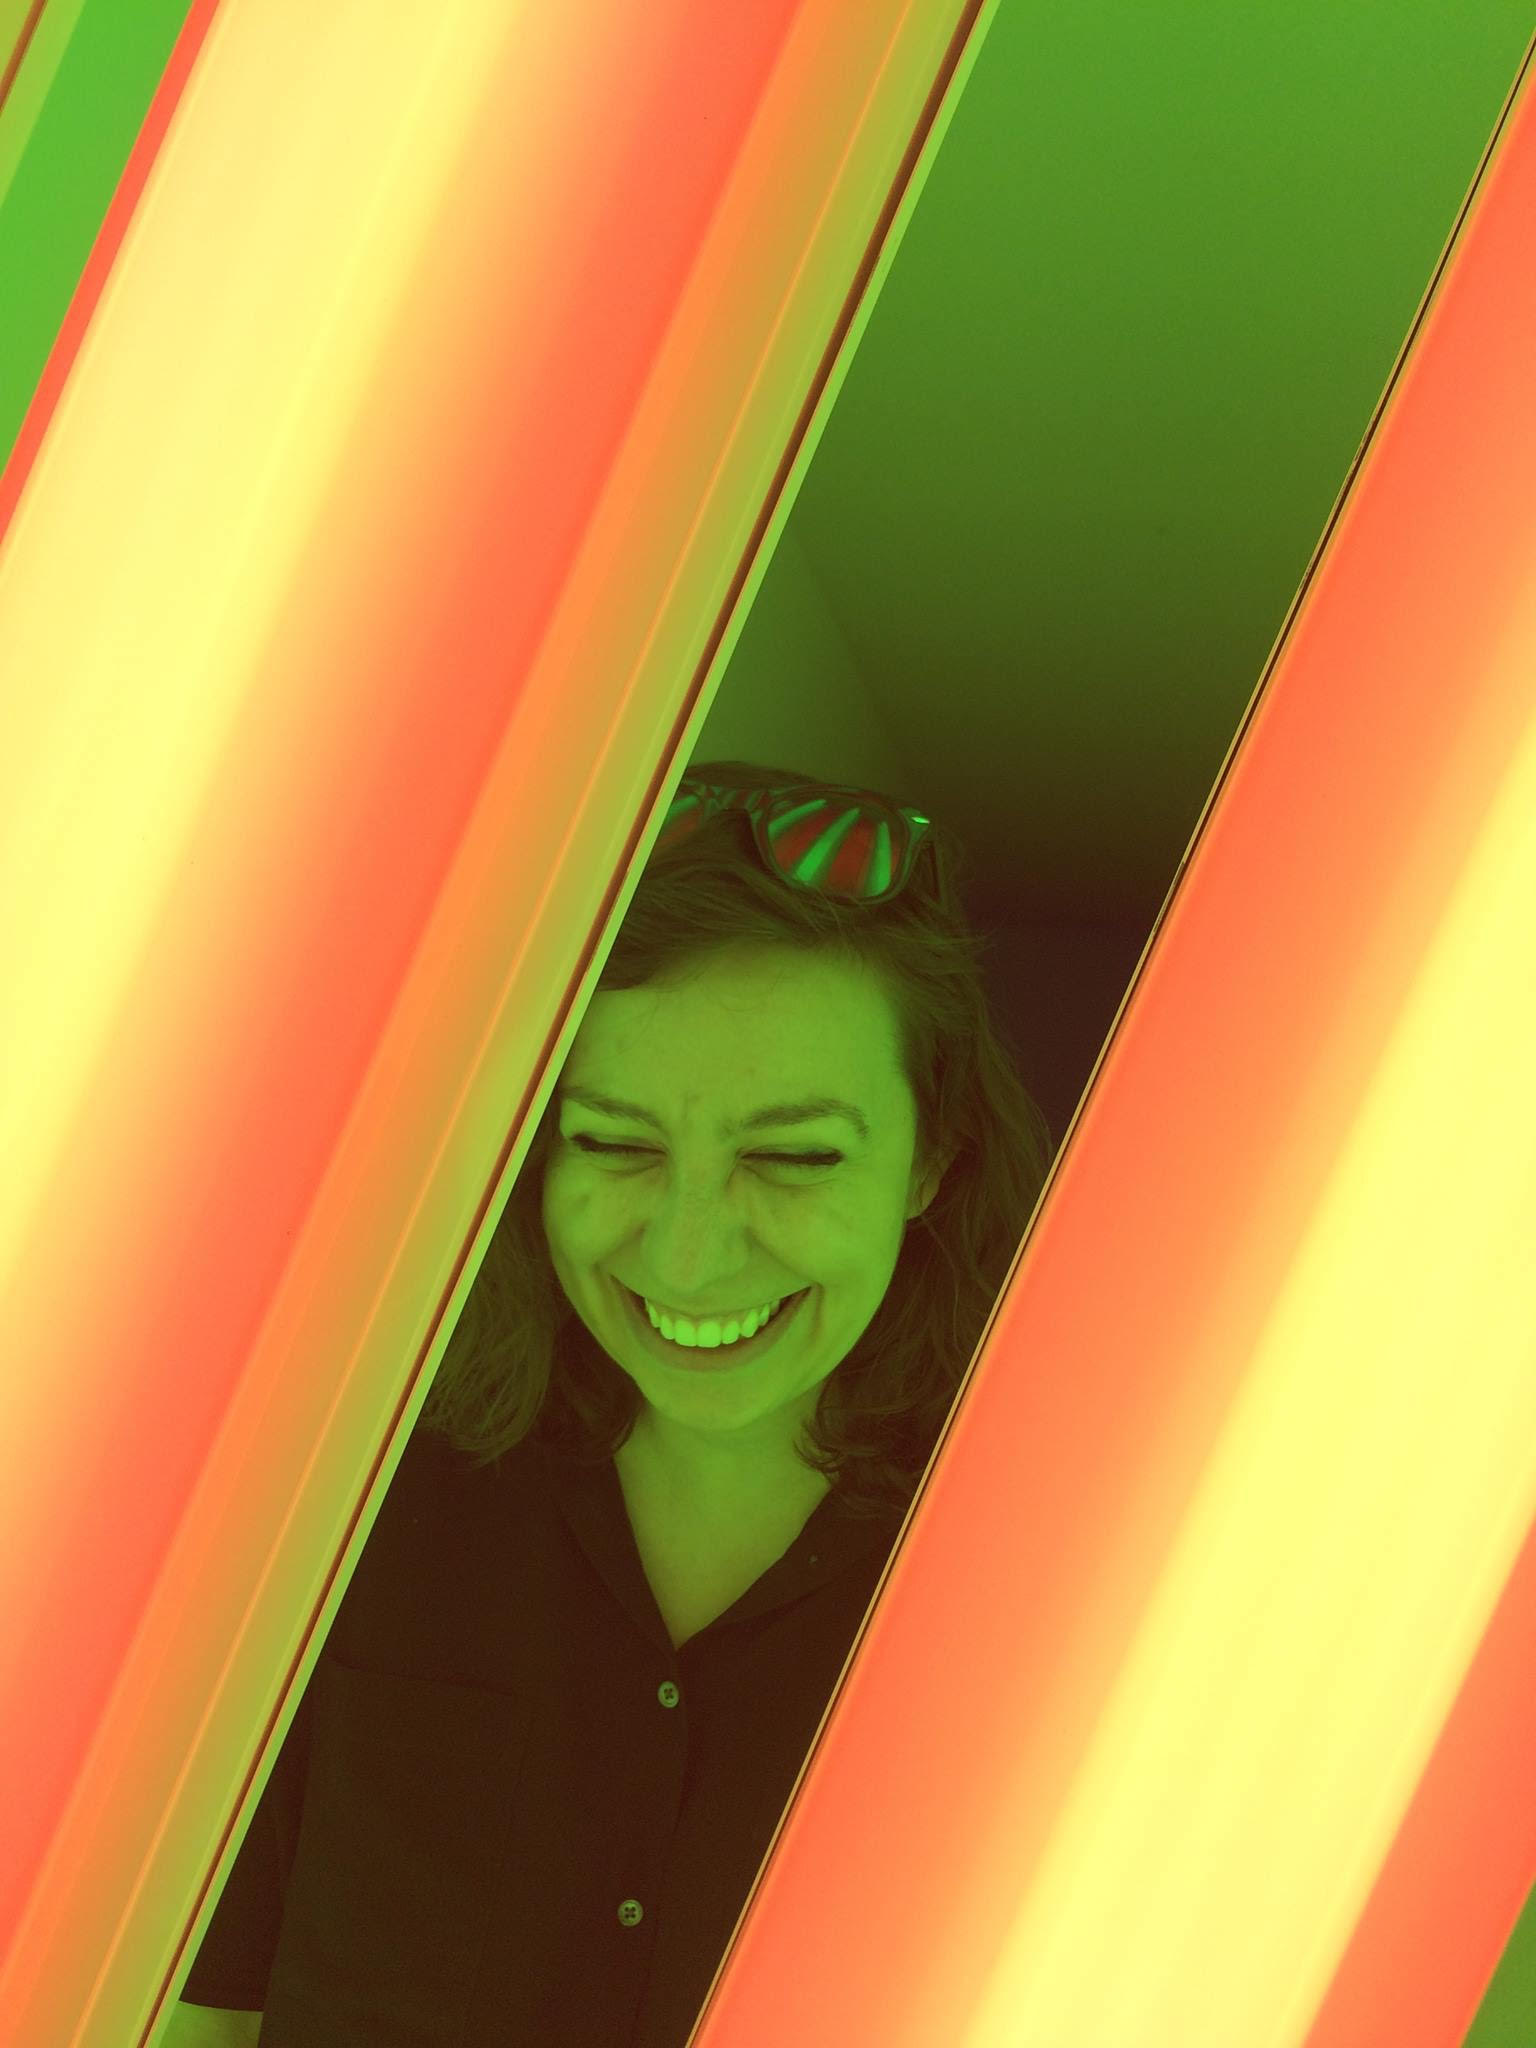 Ashley with the Dan Flavin installation at the Chianti Foundation, Marfa, TX. photo by Laura Weeks